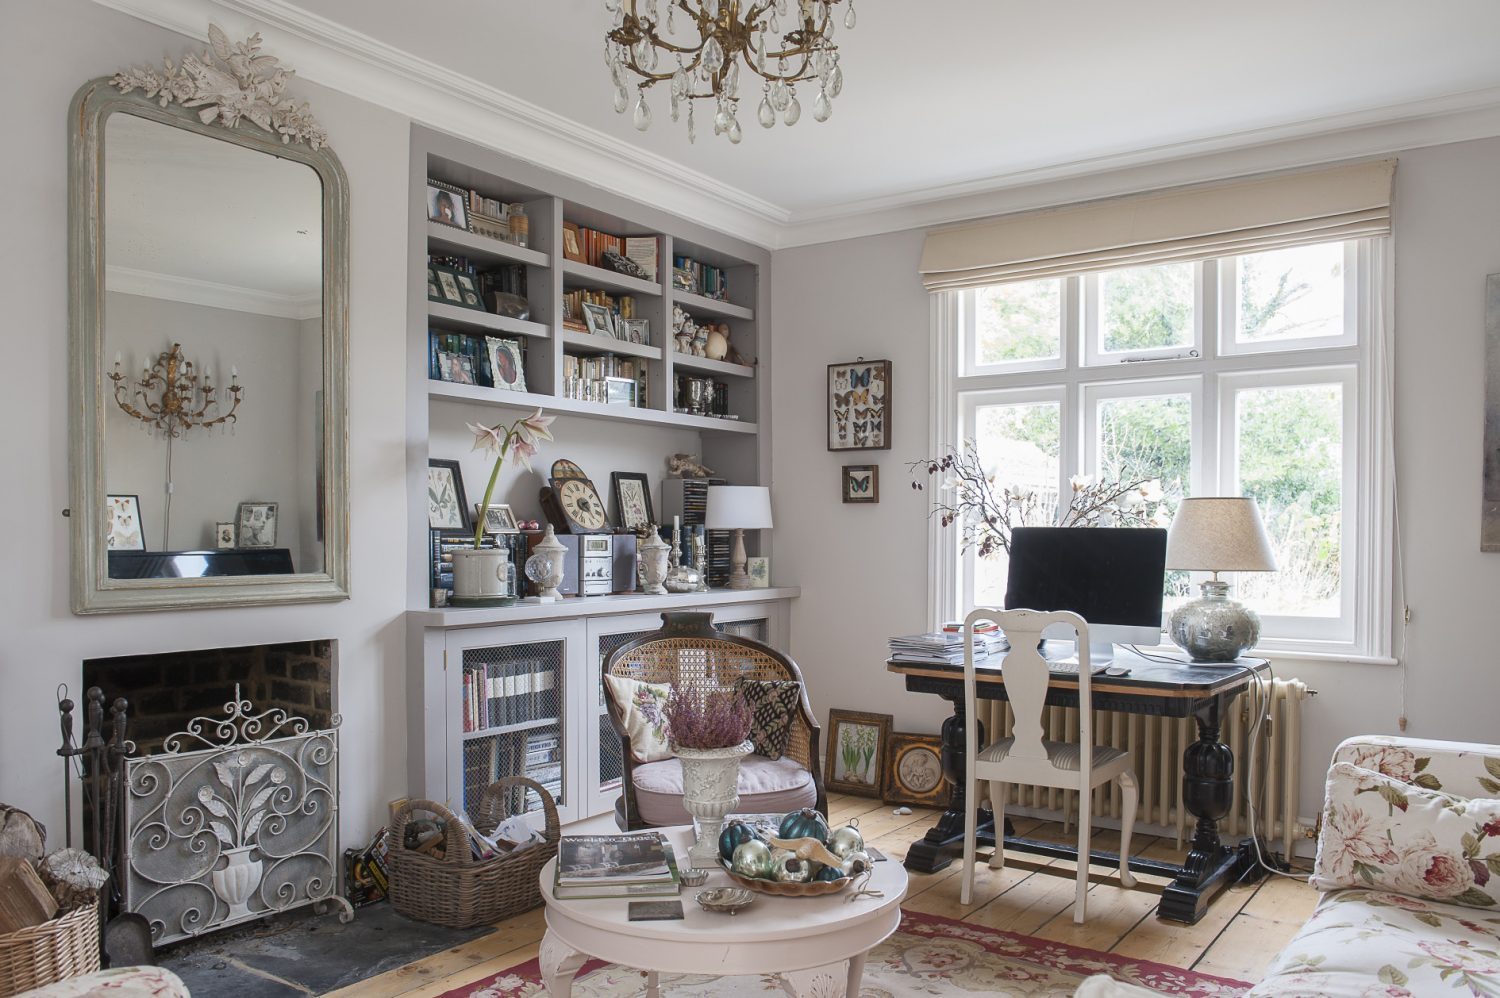 Emma's B&B guests can relax in her pretty drawing room which overlooks the gravel driveway and raised vegetable beds in the front garden. Pale decor and reflective, glittering treasures make the most of the light, which floods in from the kitchen though half-glazed sliding doors.